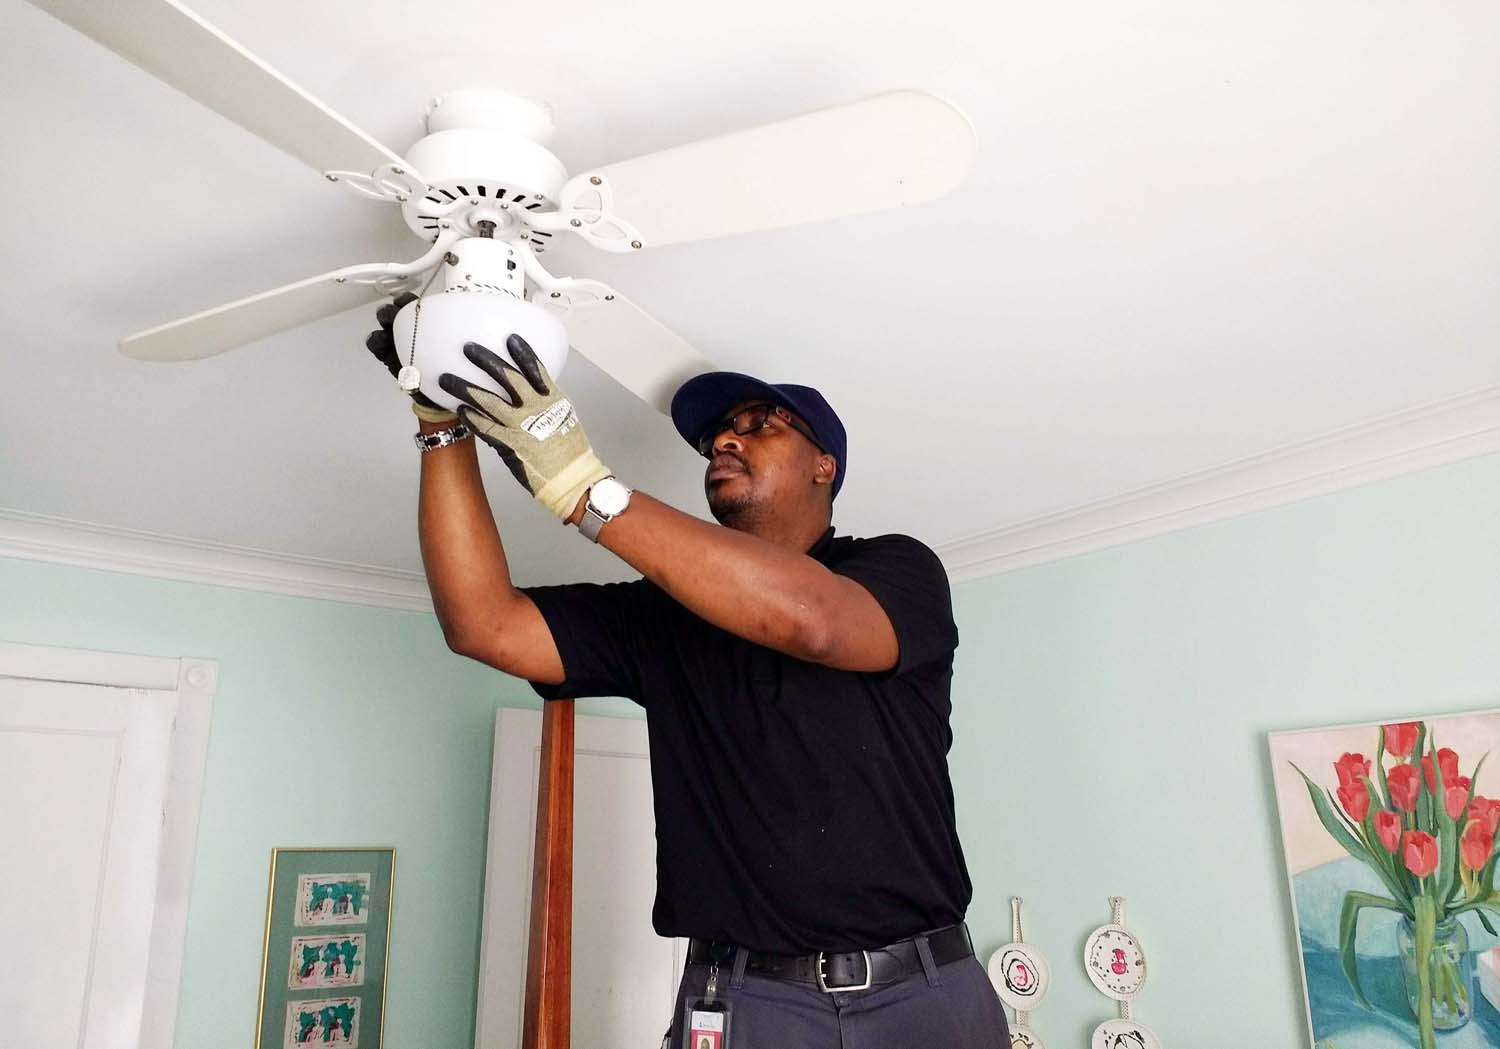 Sam Martin, an engineer with the Energy Efficiency Program, visits homes to replace all light bulbs with long-lasting, warm LED bulbs, at no charge. Call 888-652-2955.